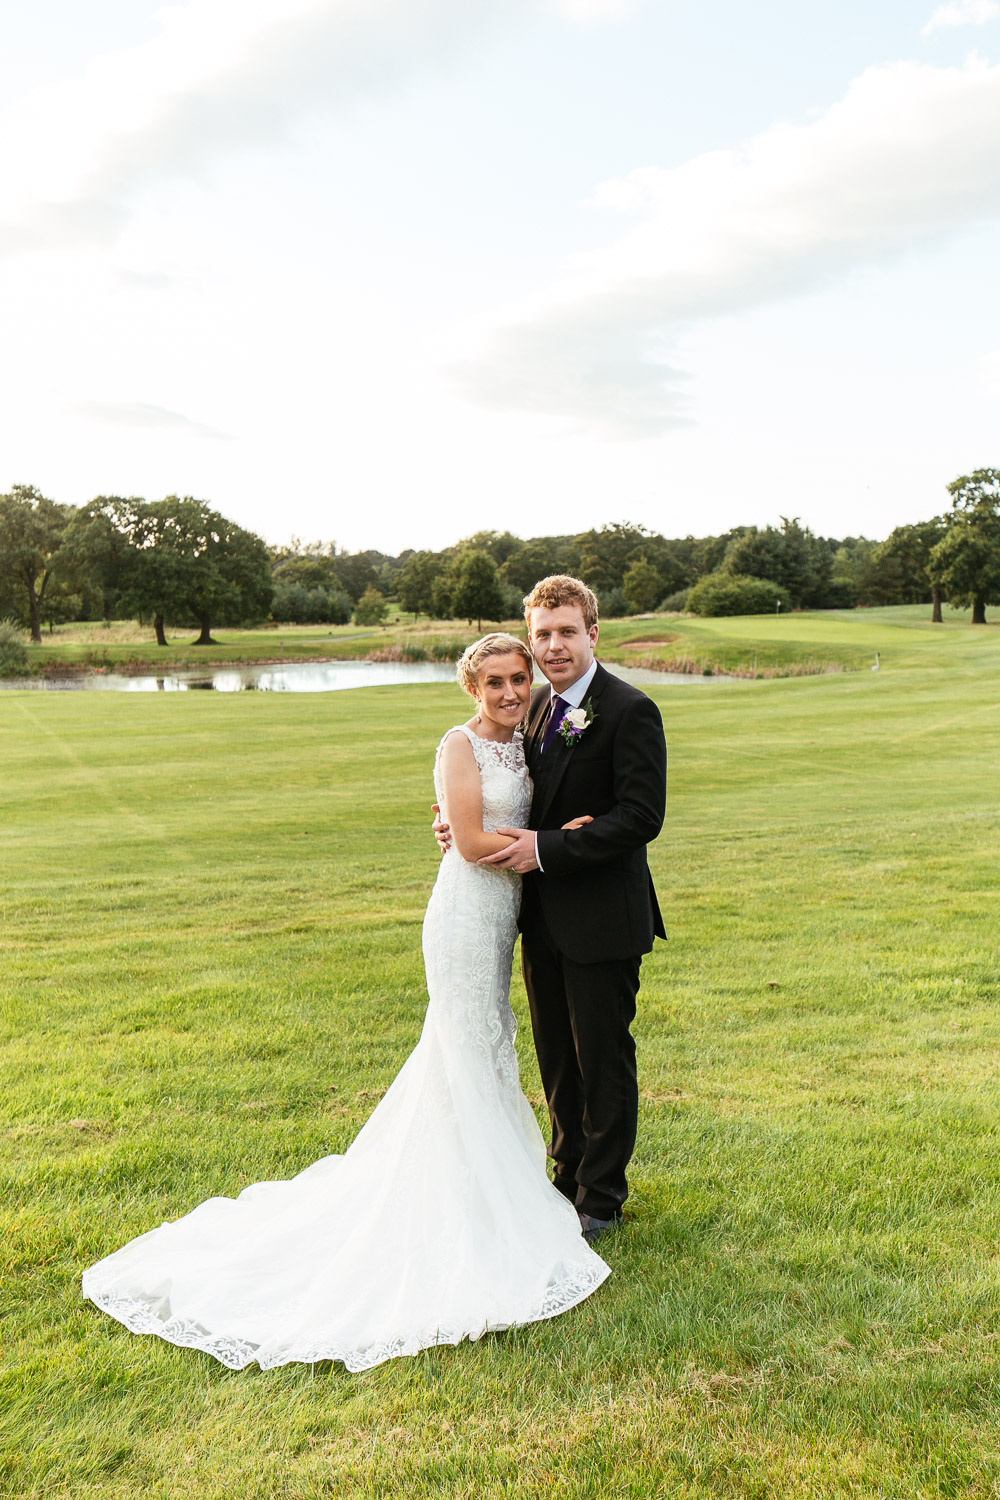 Siobhan-and-James-Wedding-Highlights-82.jpg